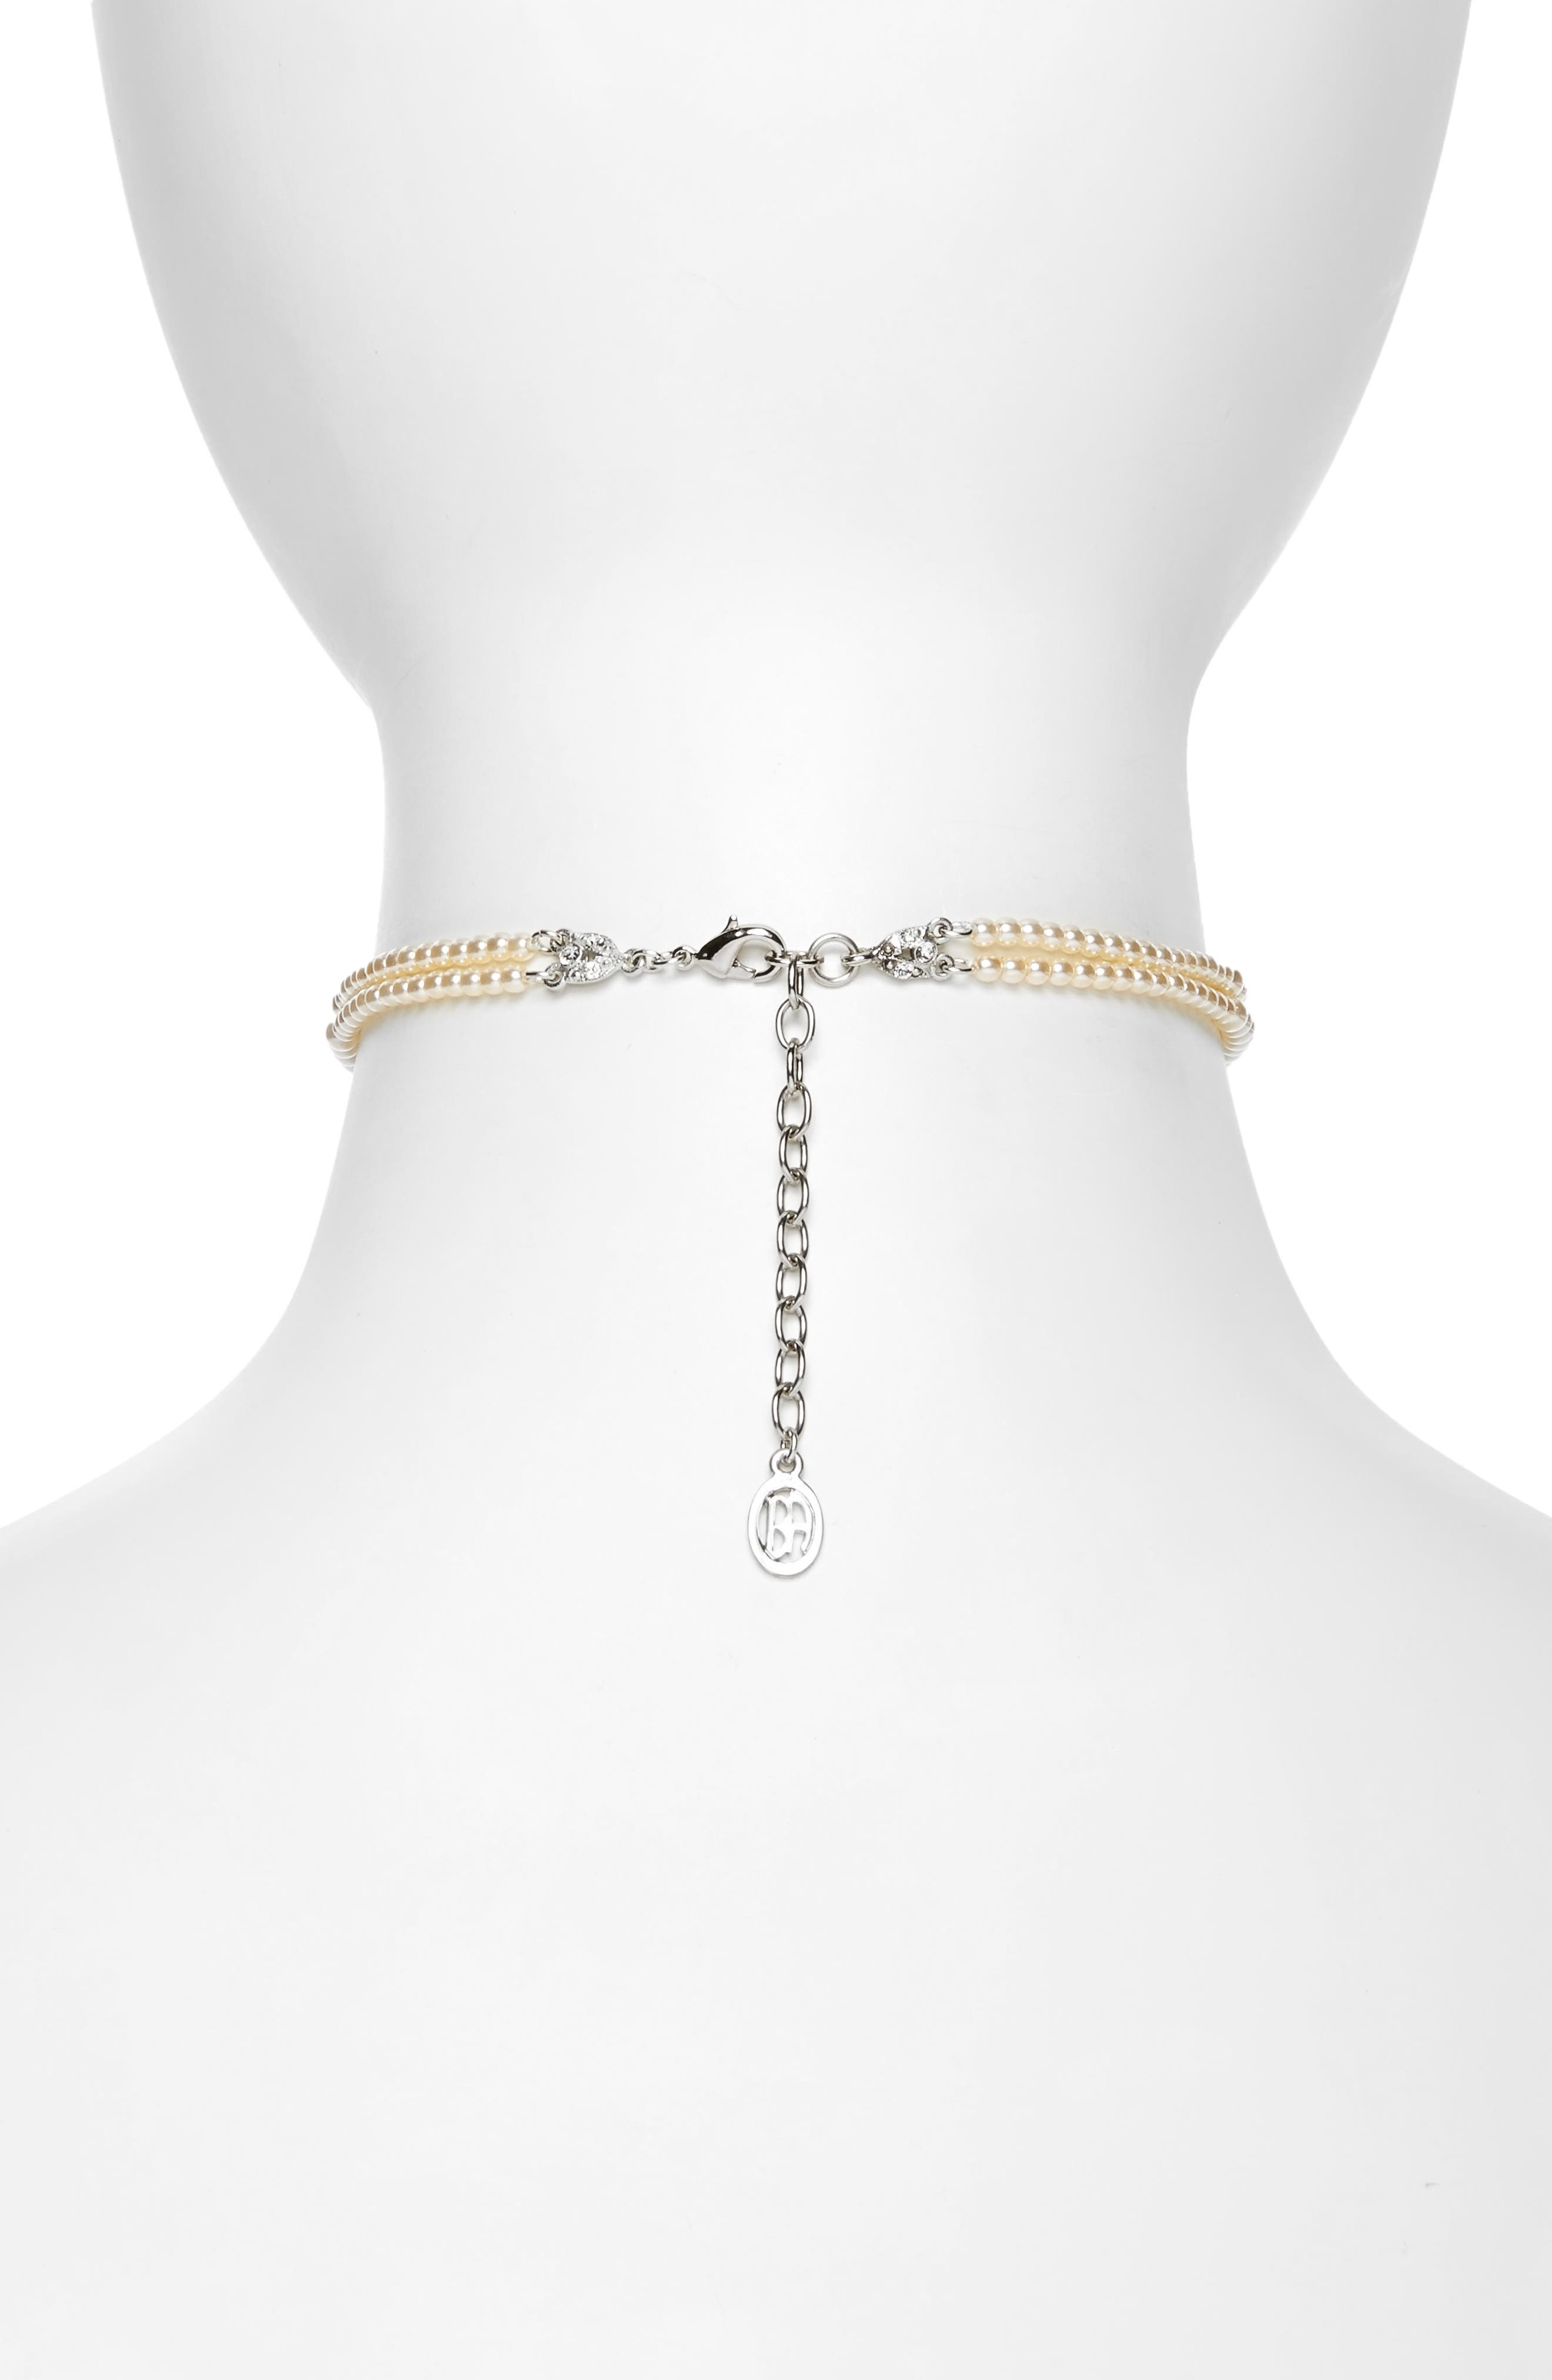 Imitation Pearl Choker Necklace,                             Alternate thumbnail 2, color,                             IVORY / SILVER